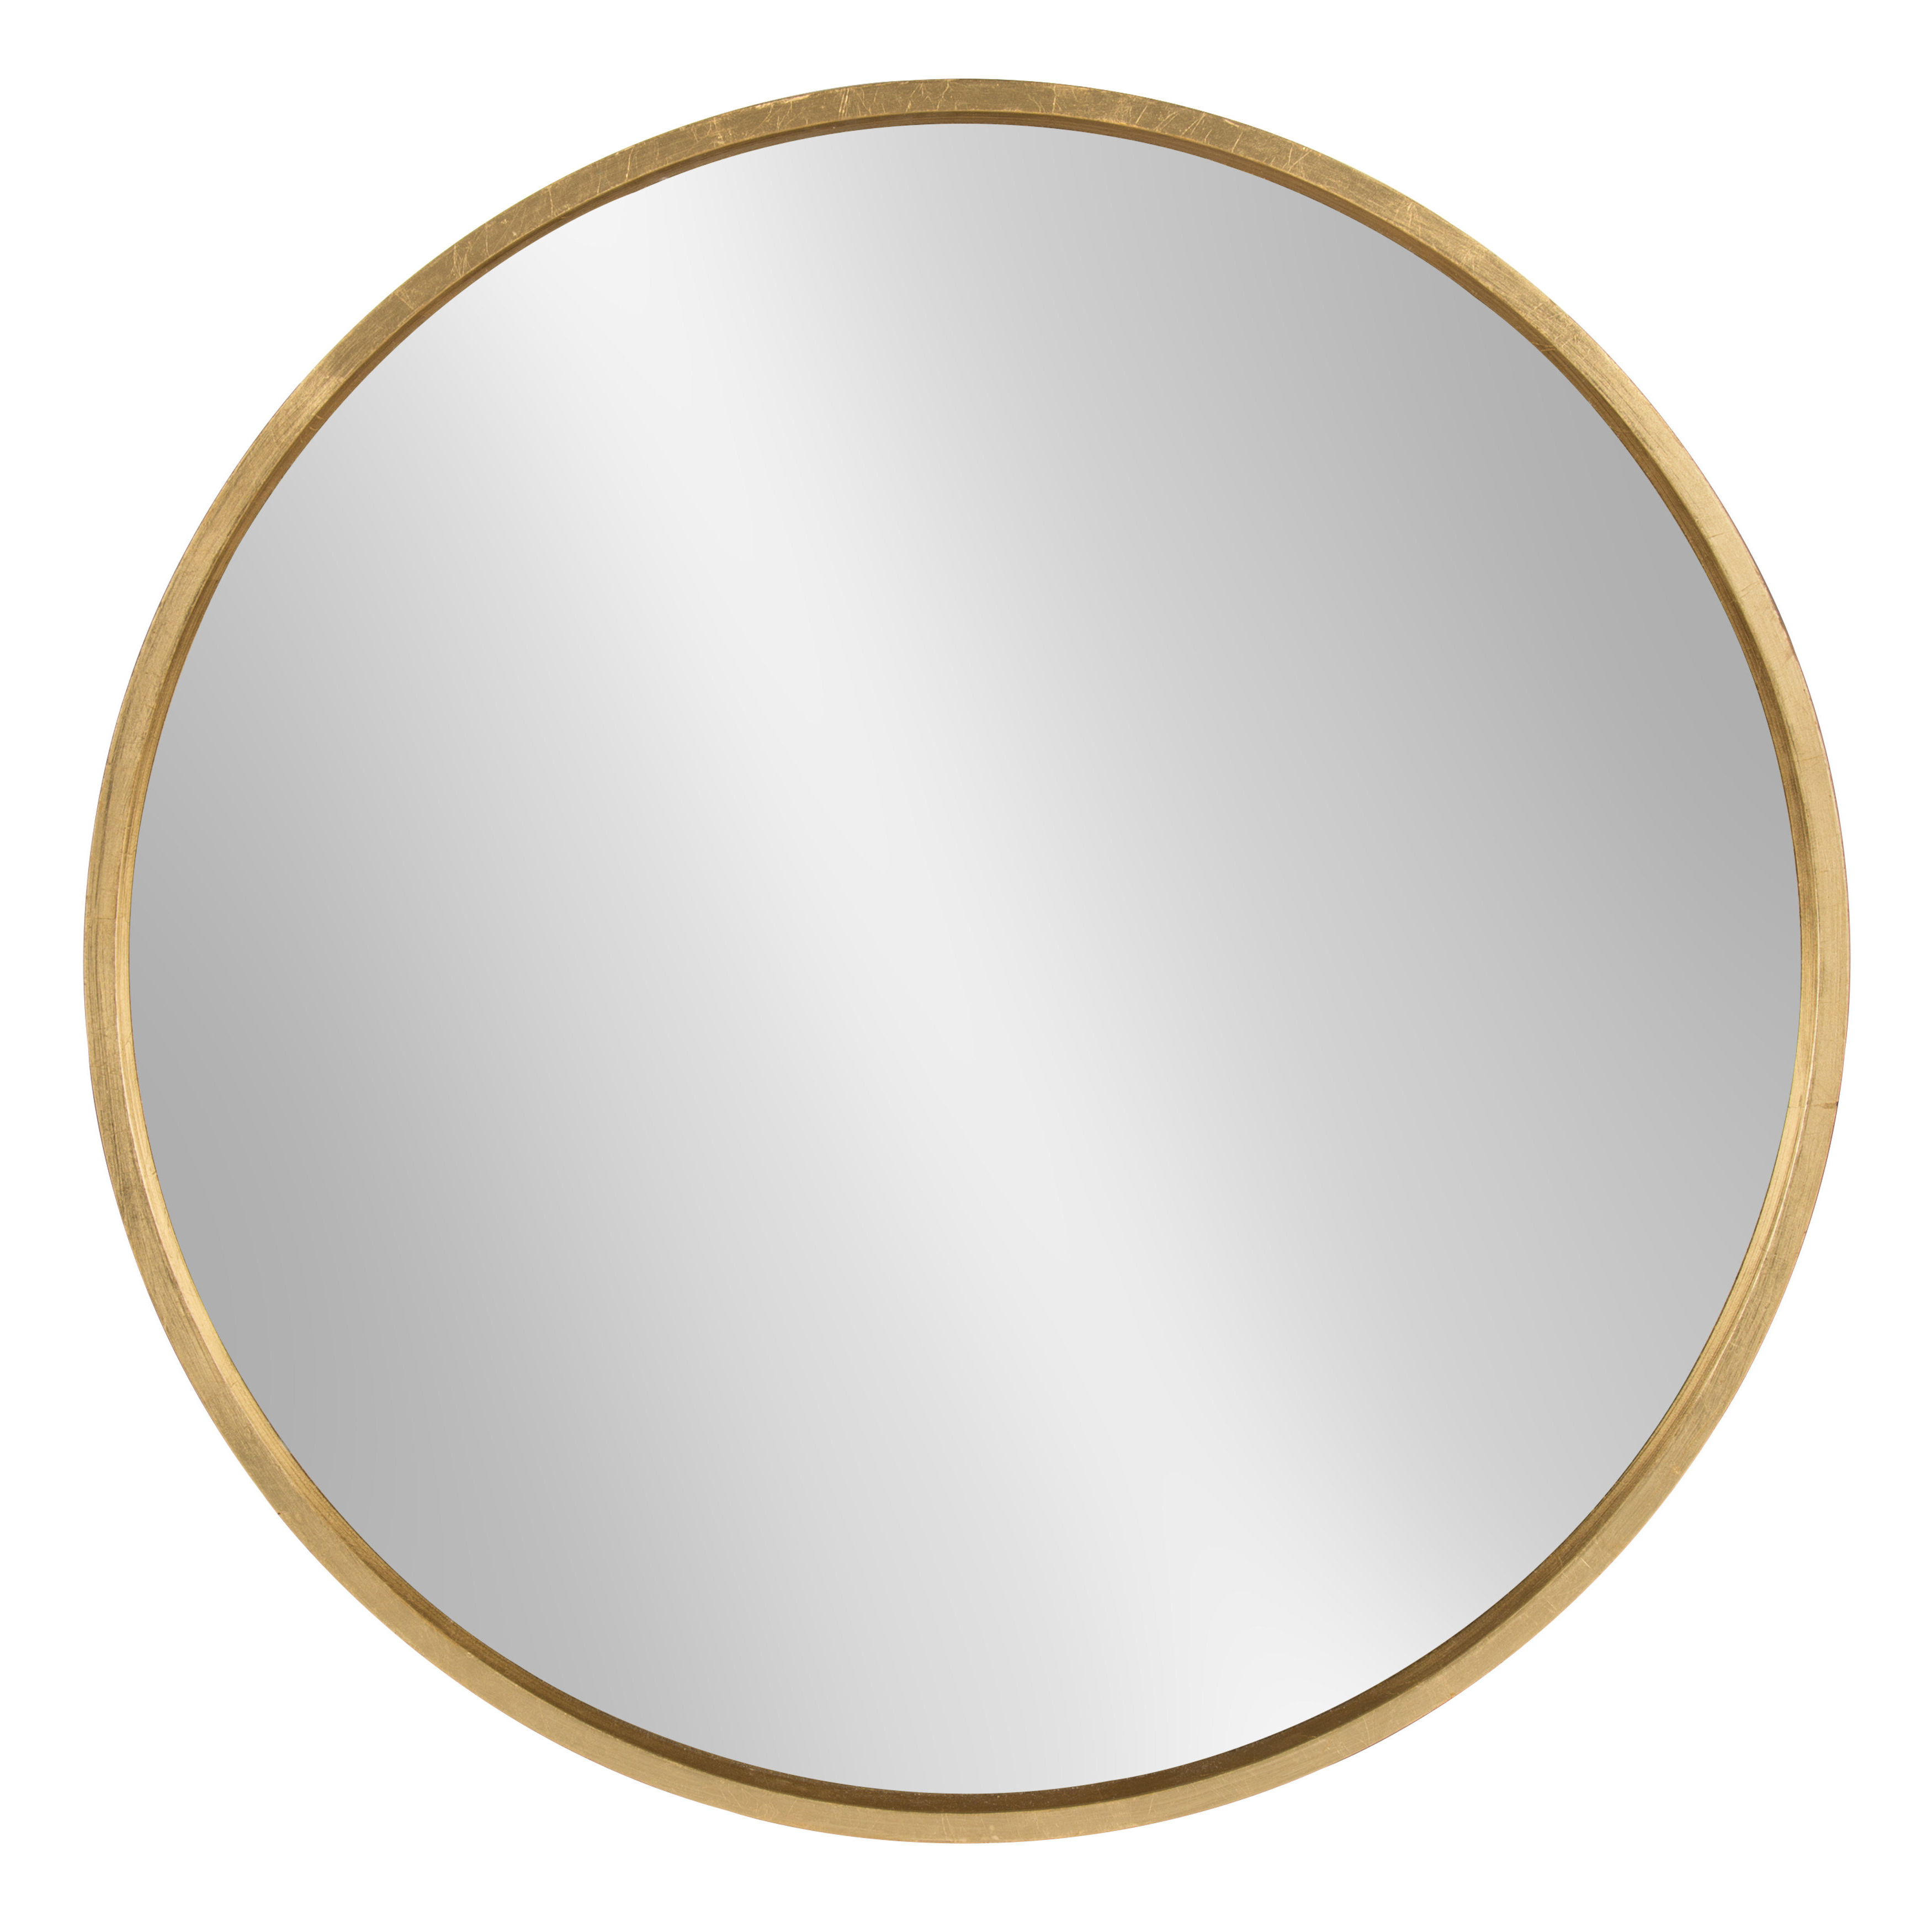 Famous Mistana Tanner Accent Mirror In Moseley Accent Mirrors (View 19 of 20)